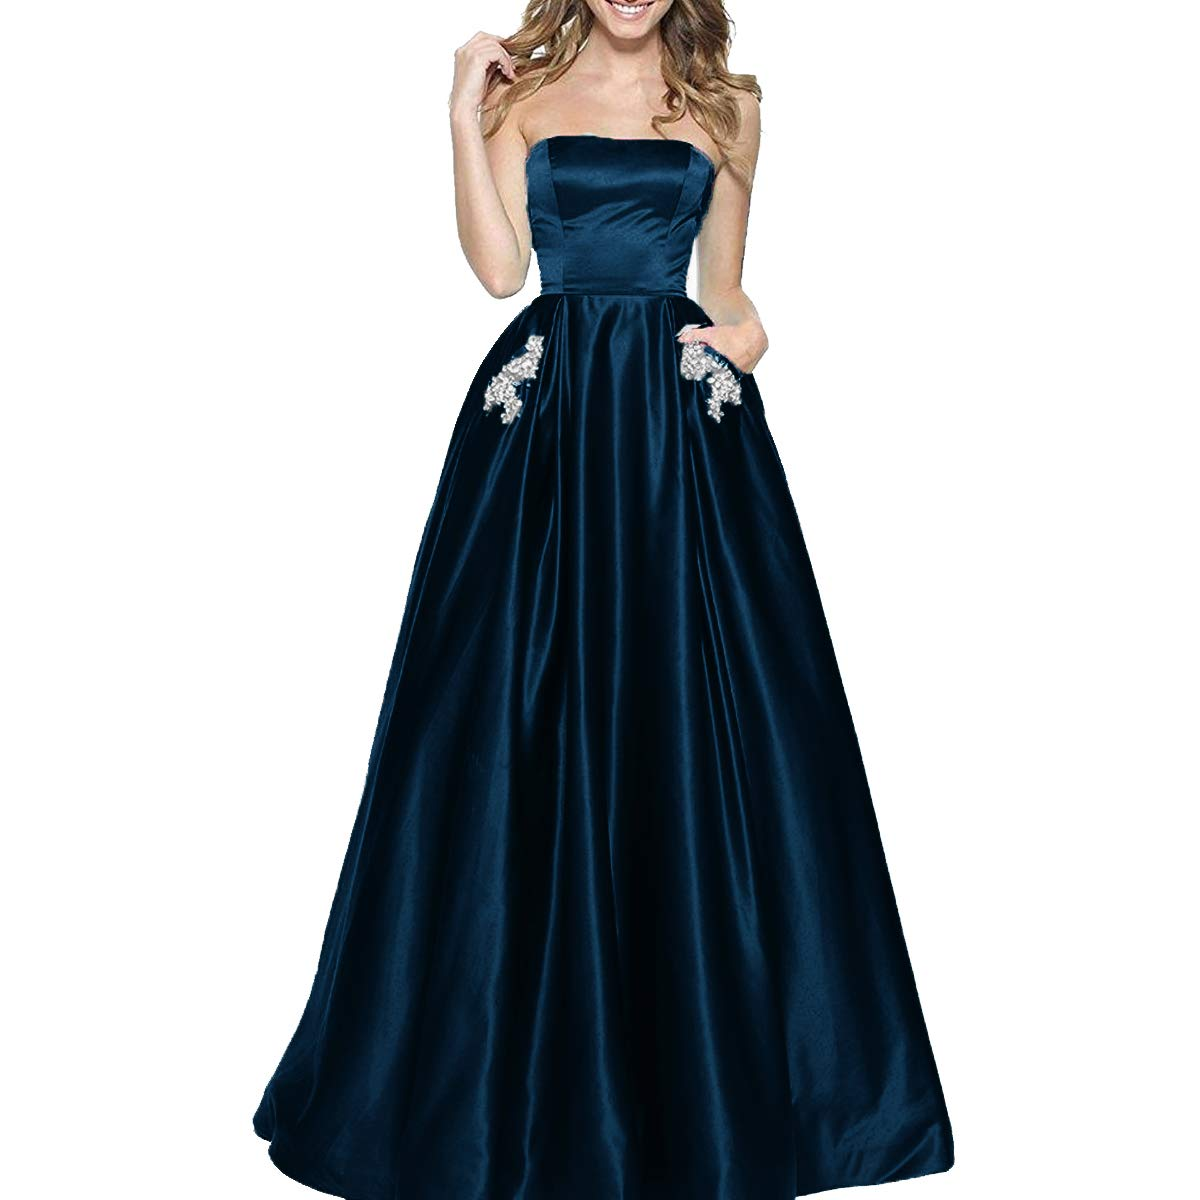 Dark Navy TTYbridal Women's ALine Strapless Beaded Prom Dresses Long Satin Homecoming Party Gown with Pockets